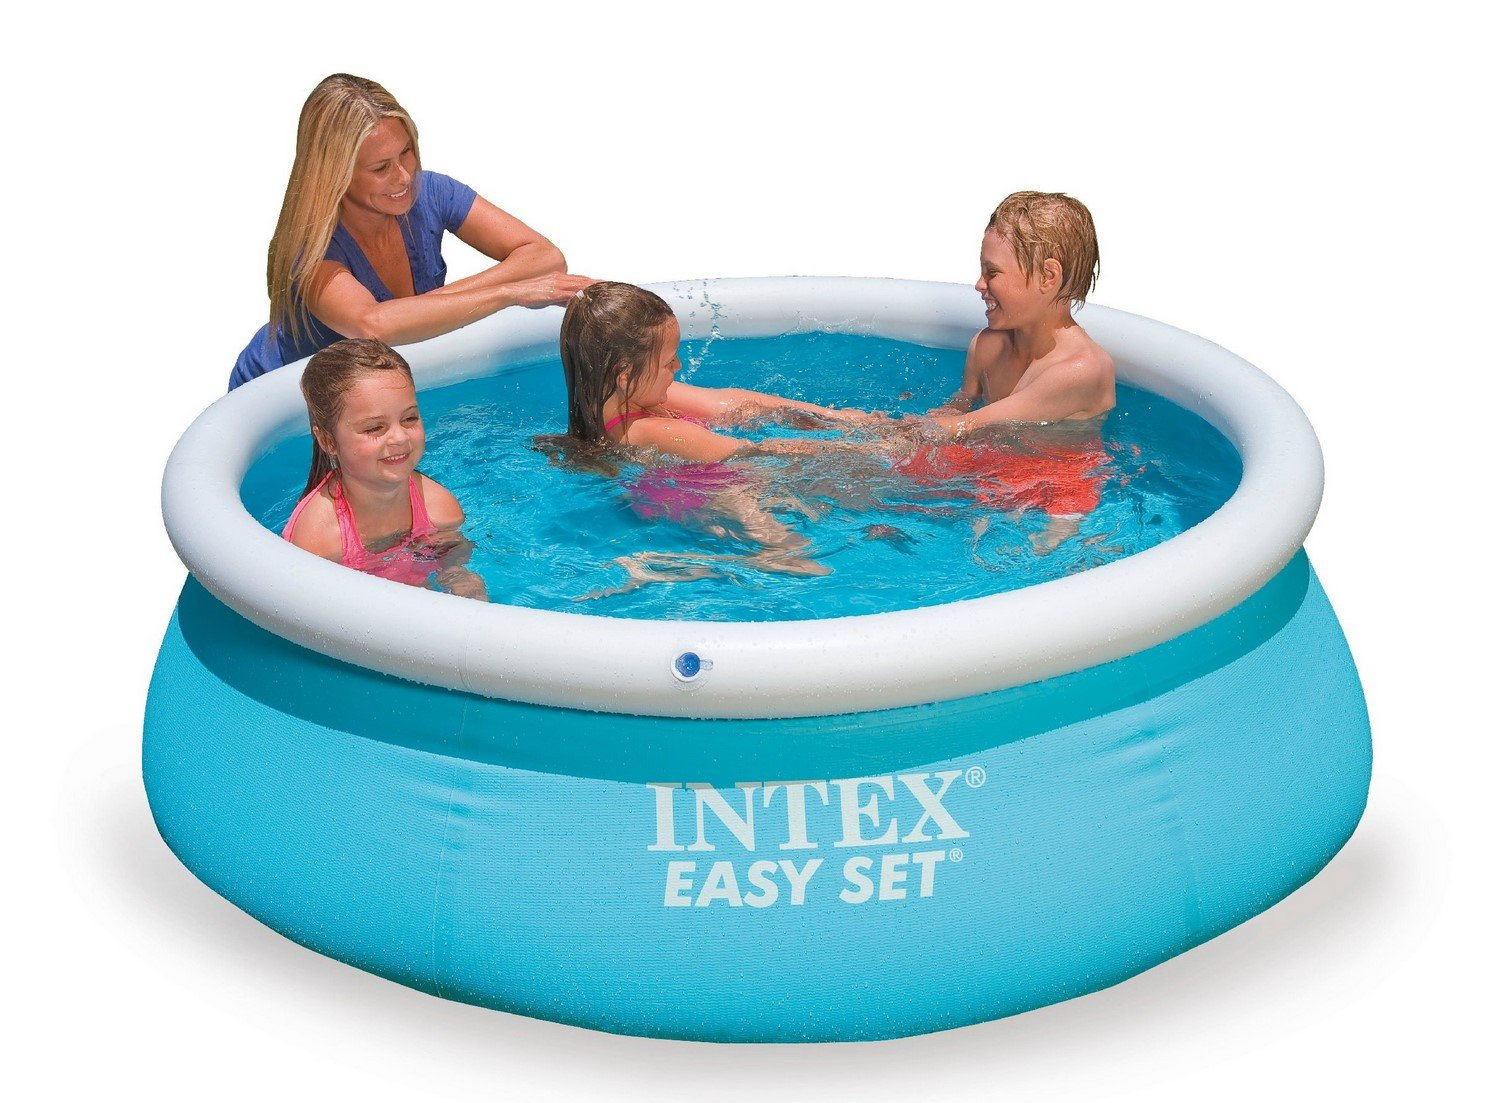 Intex 6ft x 20in Easy Set Swimming Pool #28101